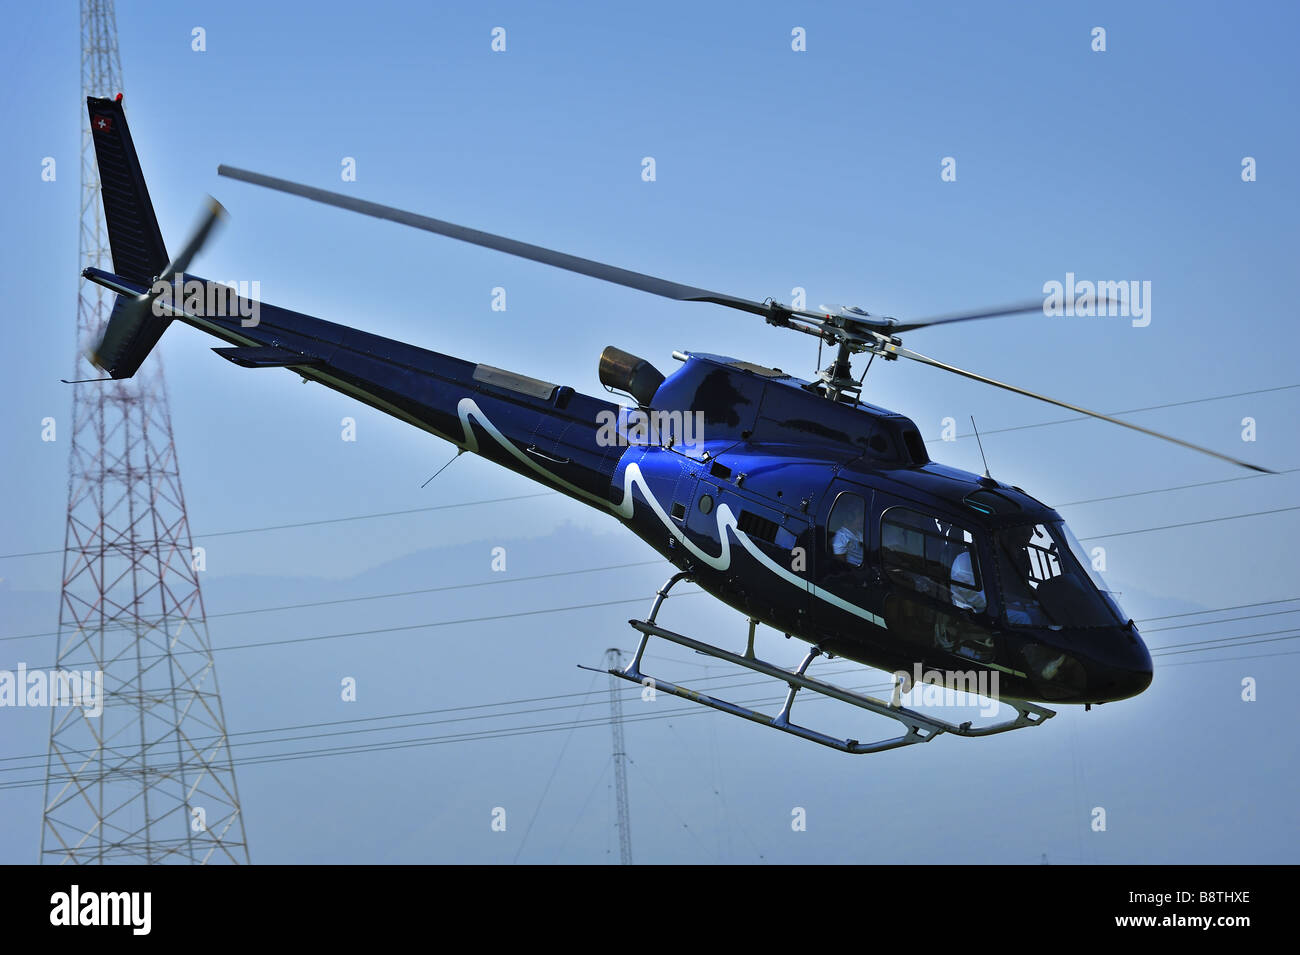 Aerial obstructions - Stock Image